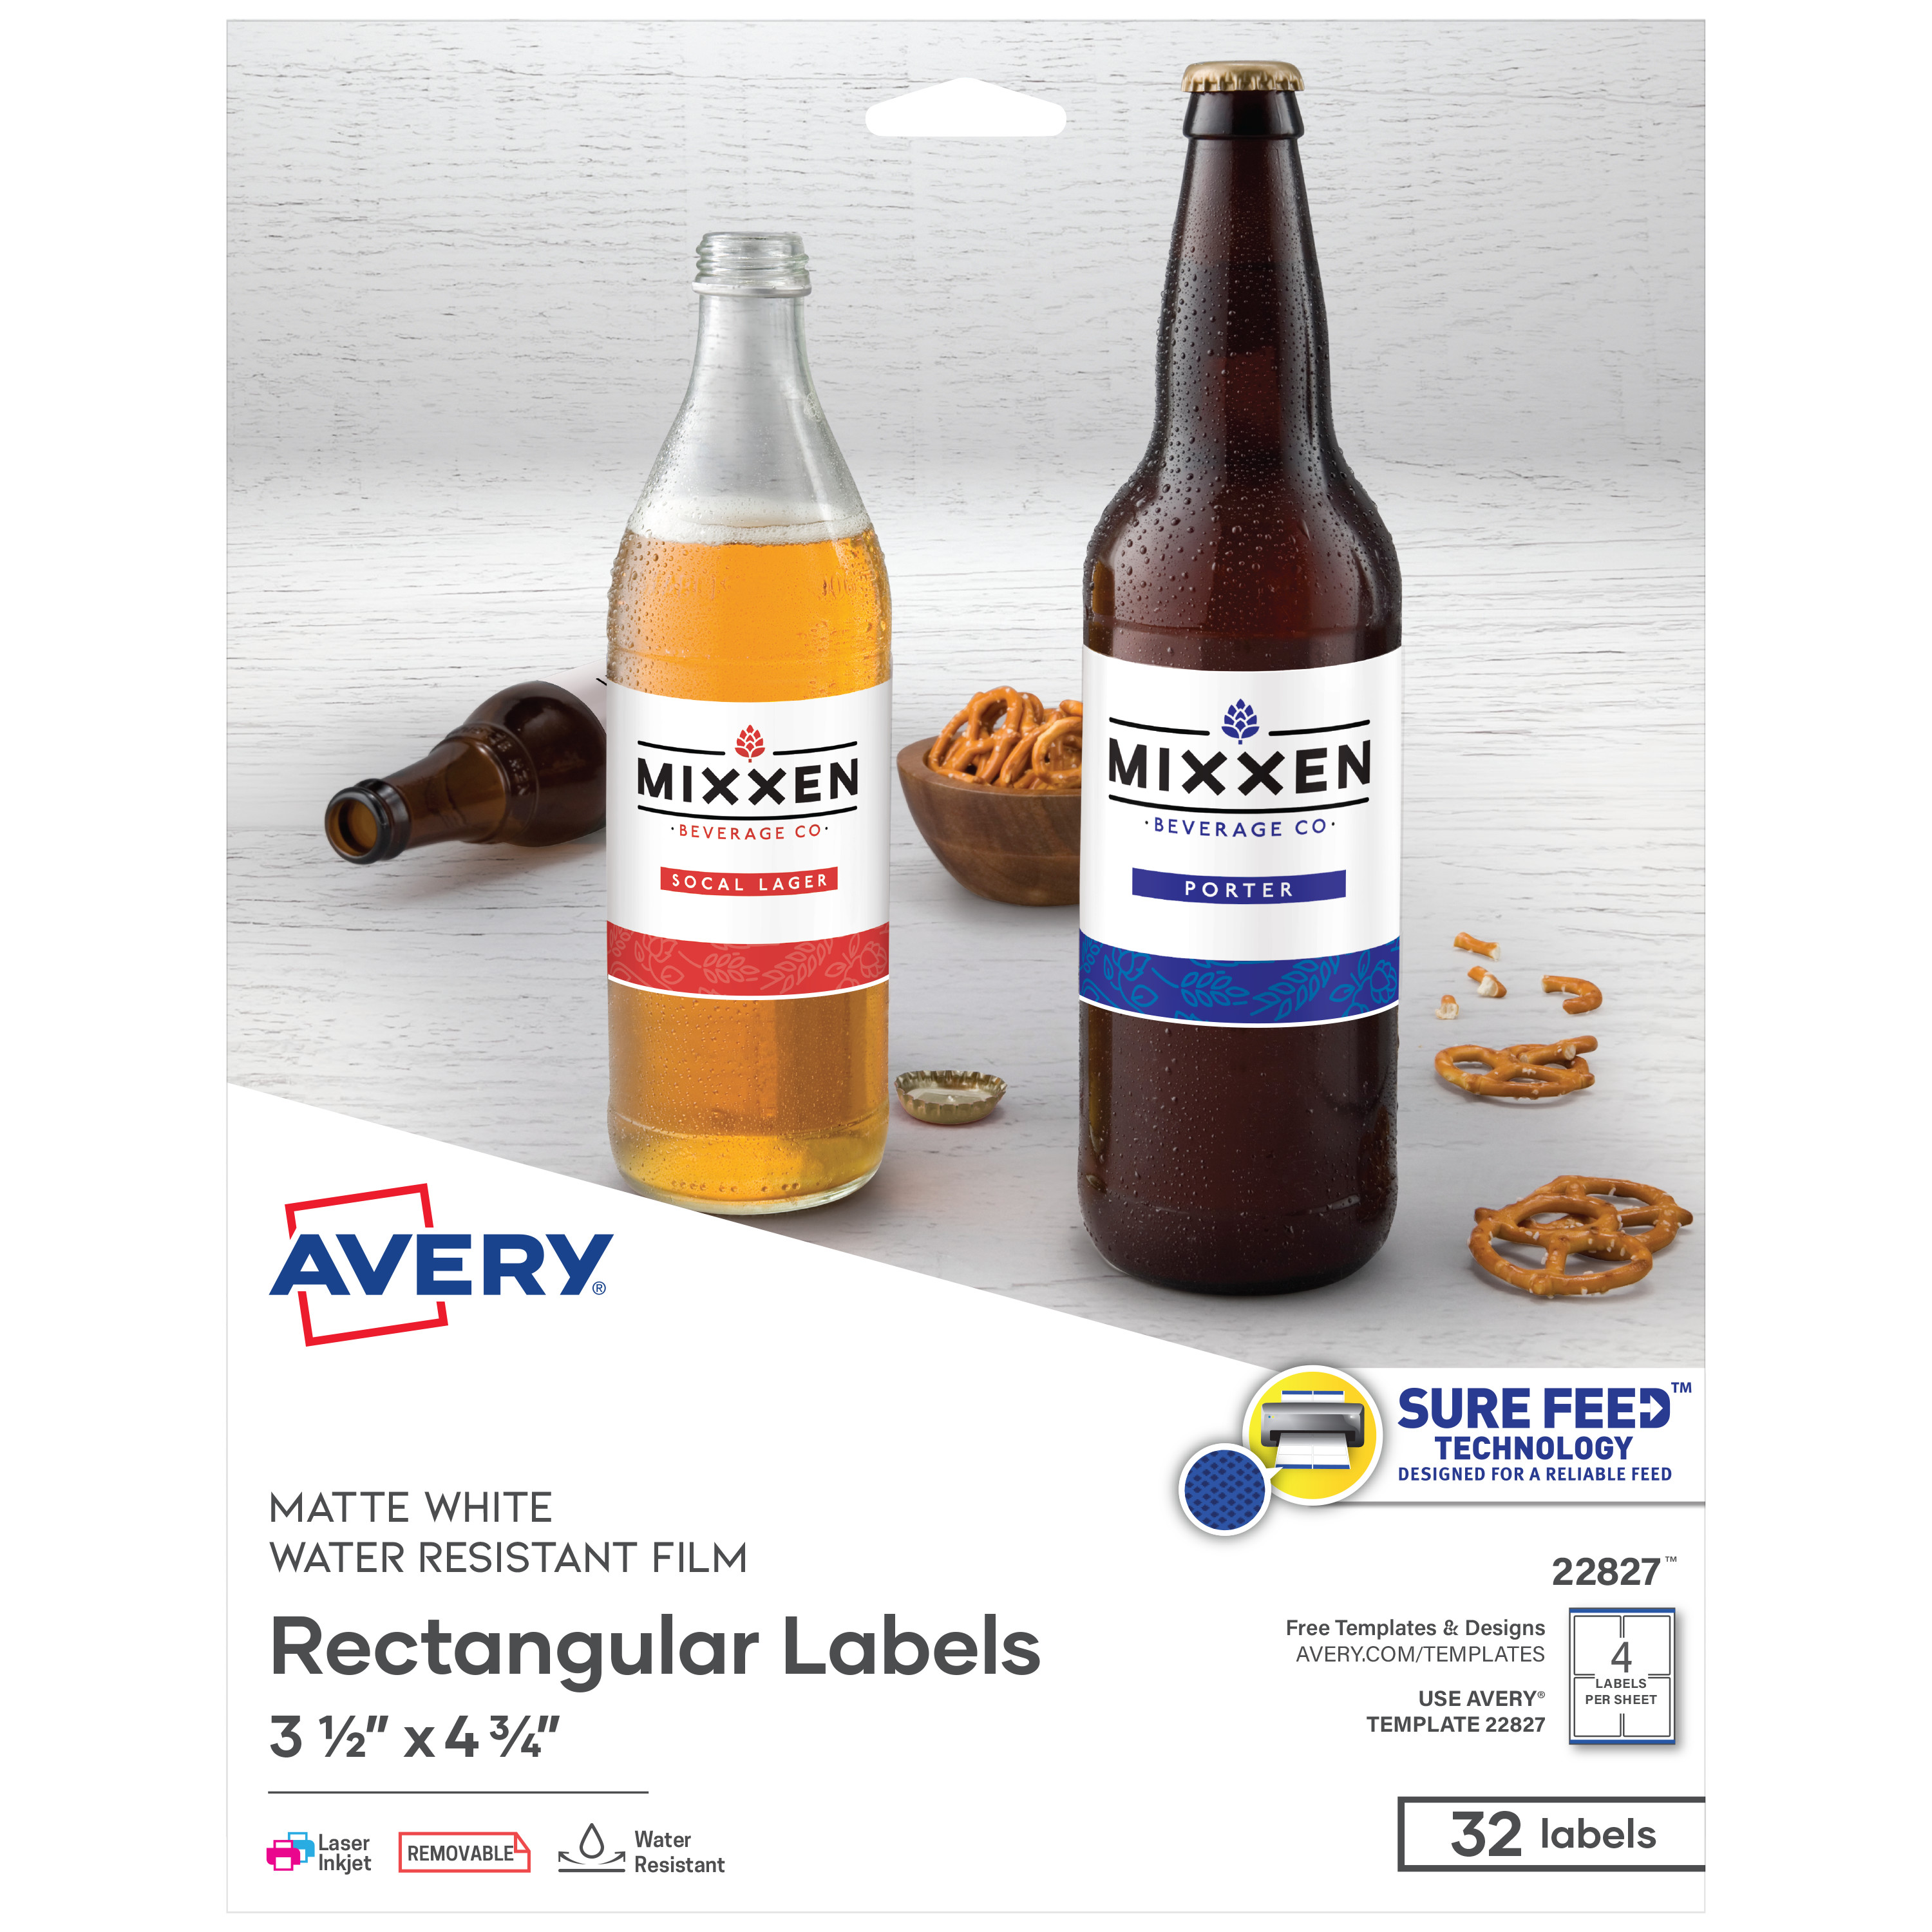 Print-to-the-Edge Removable Labels w/TrueBlock, 3 1/2 x 4 3/4, White, 32/Pack